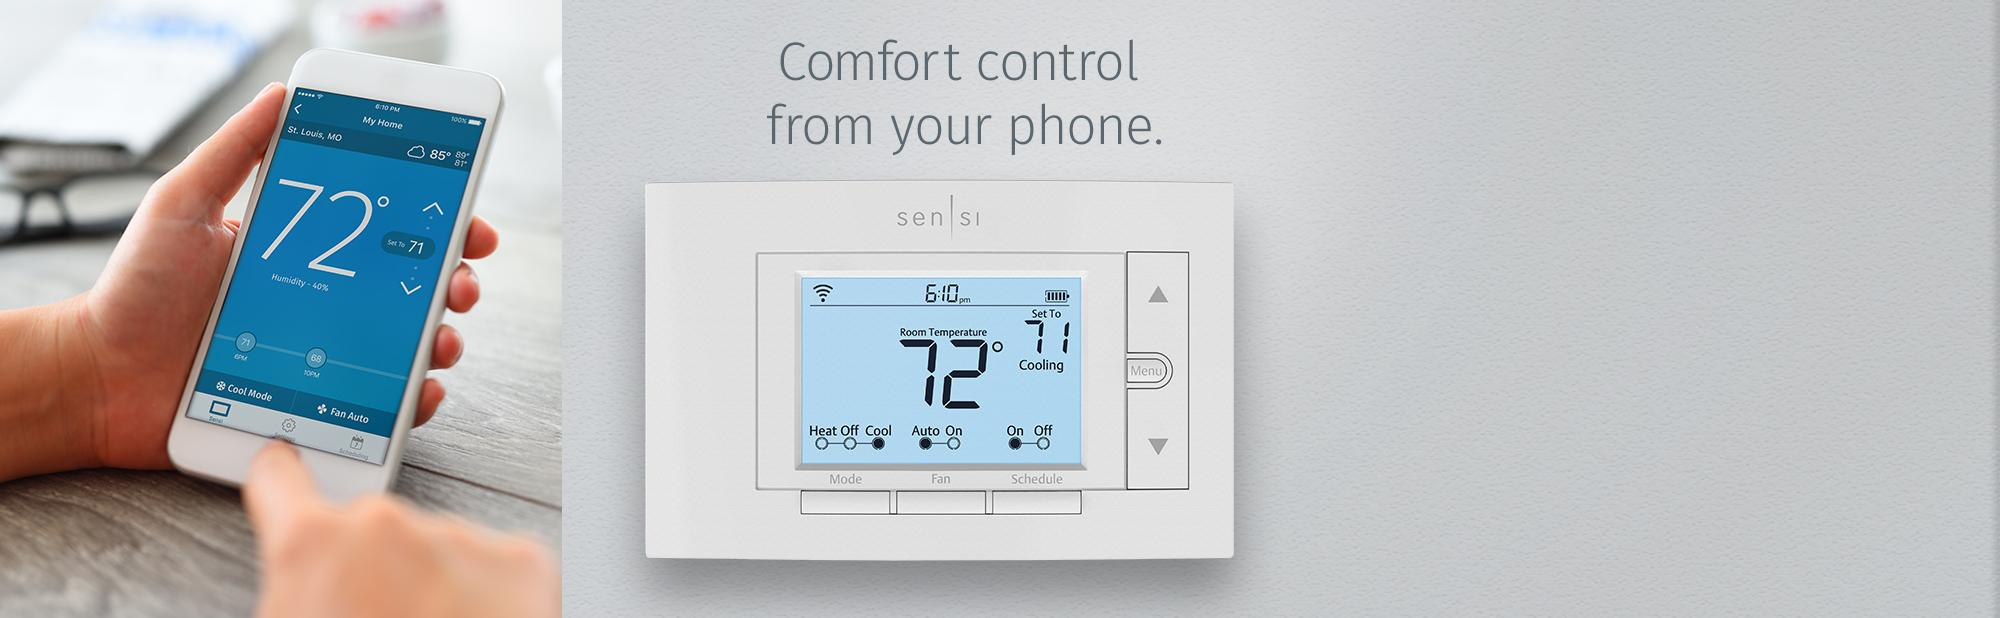 17d1233e 10f8 4d9e b49a 55f5fee26f22._SR970300_ emerson sensi wi fi thermostat for smart home, 1f87u 42wf, pro  at soozxer.org